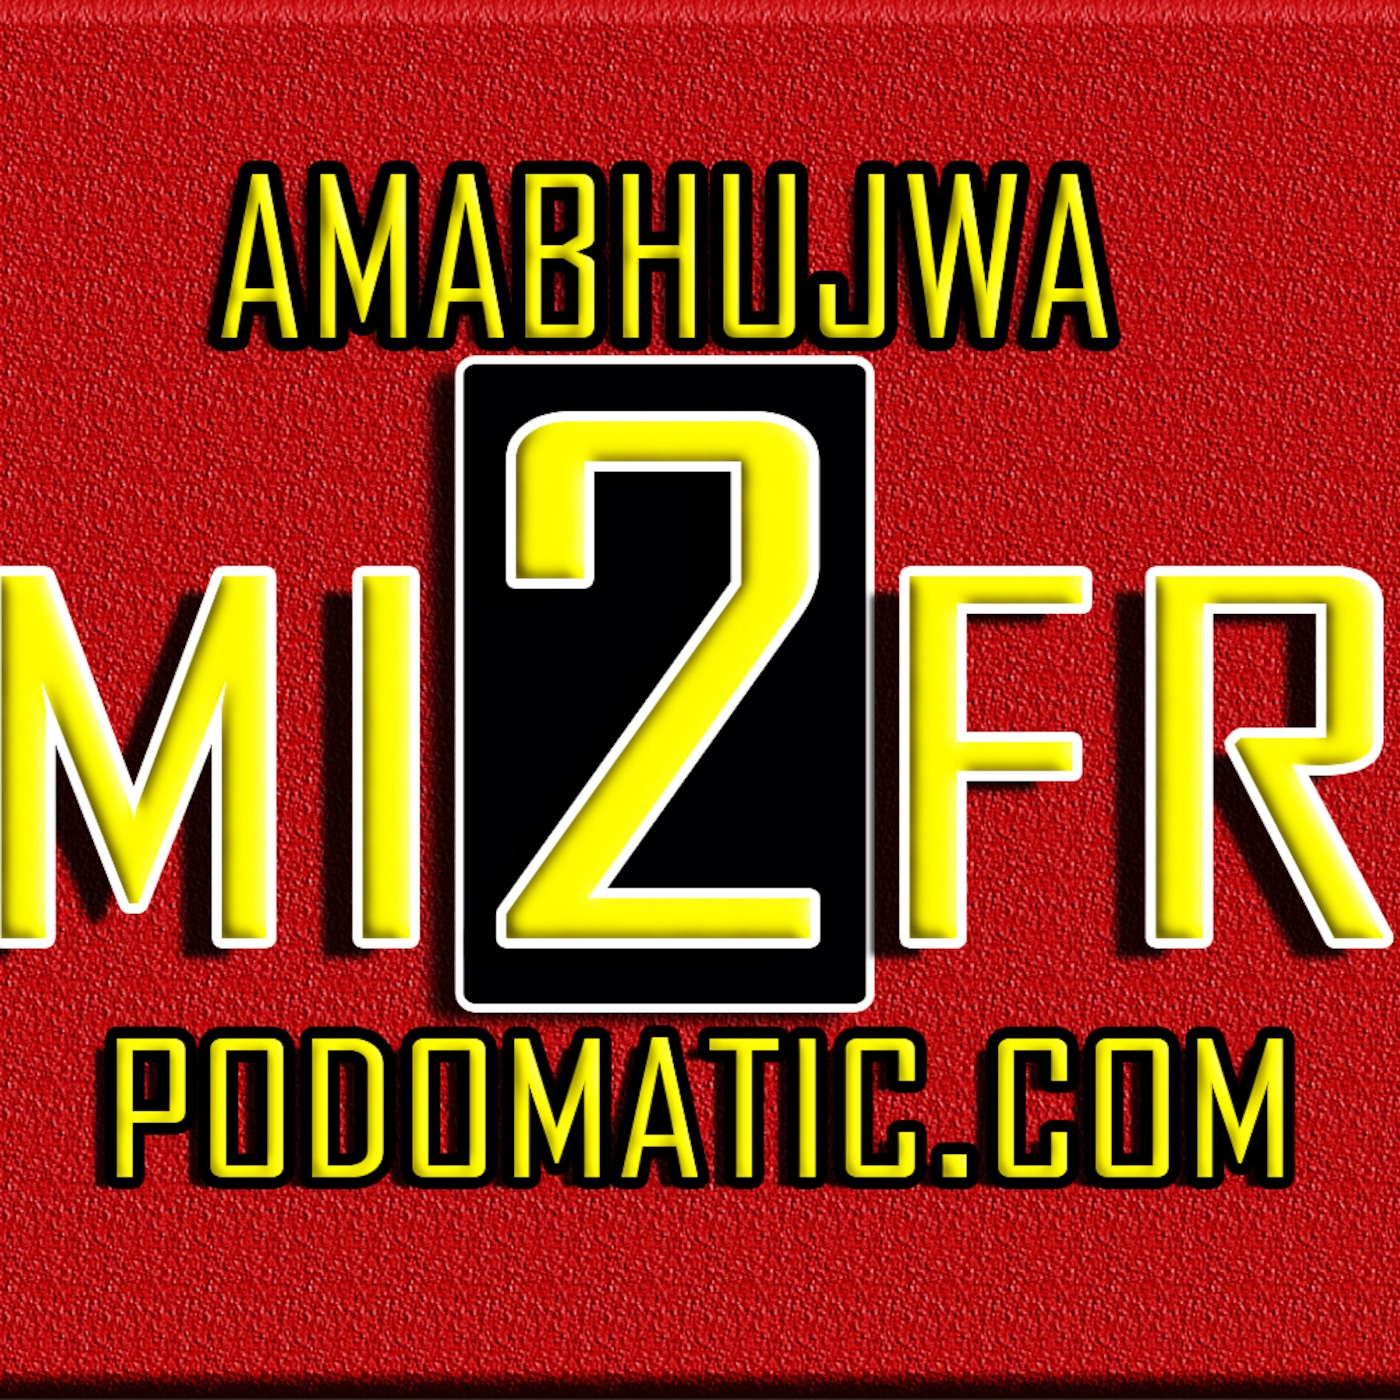 Amabhujwa Deep Sunday by Thami2fresh